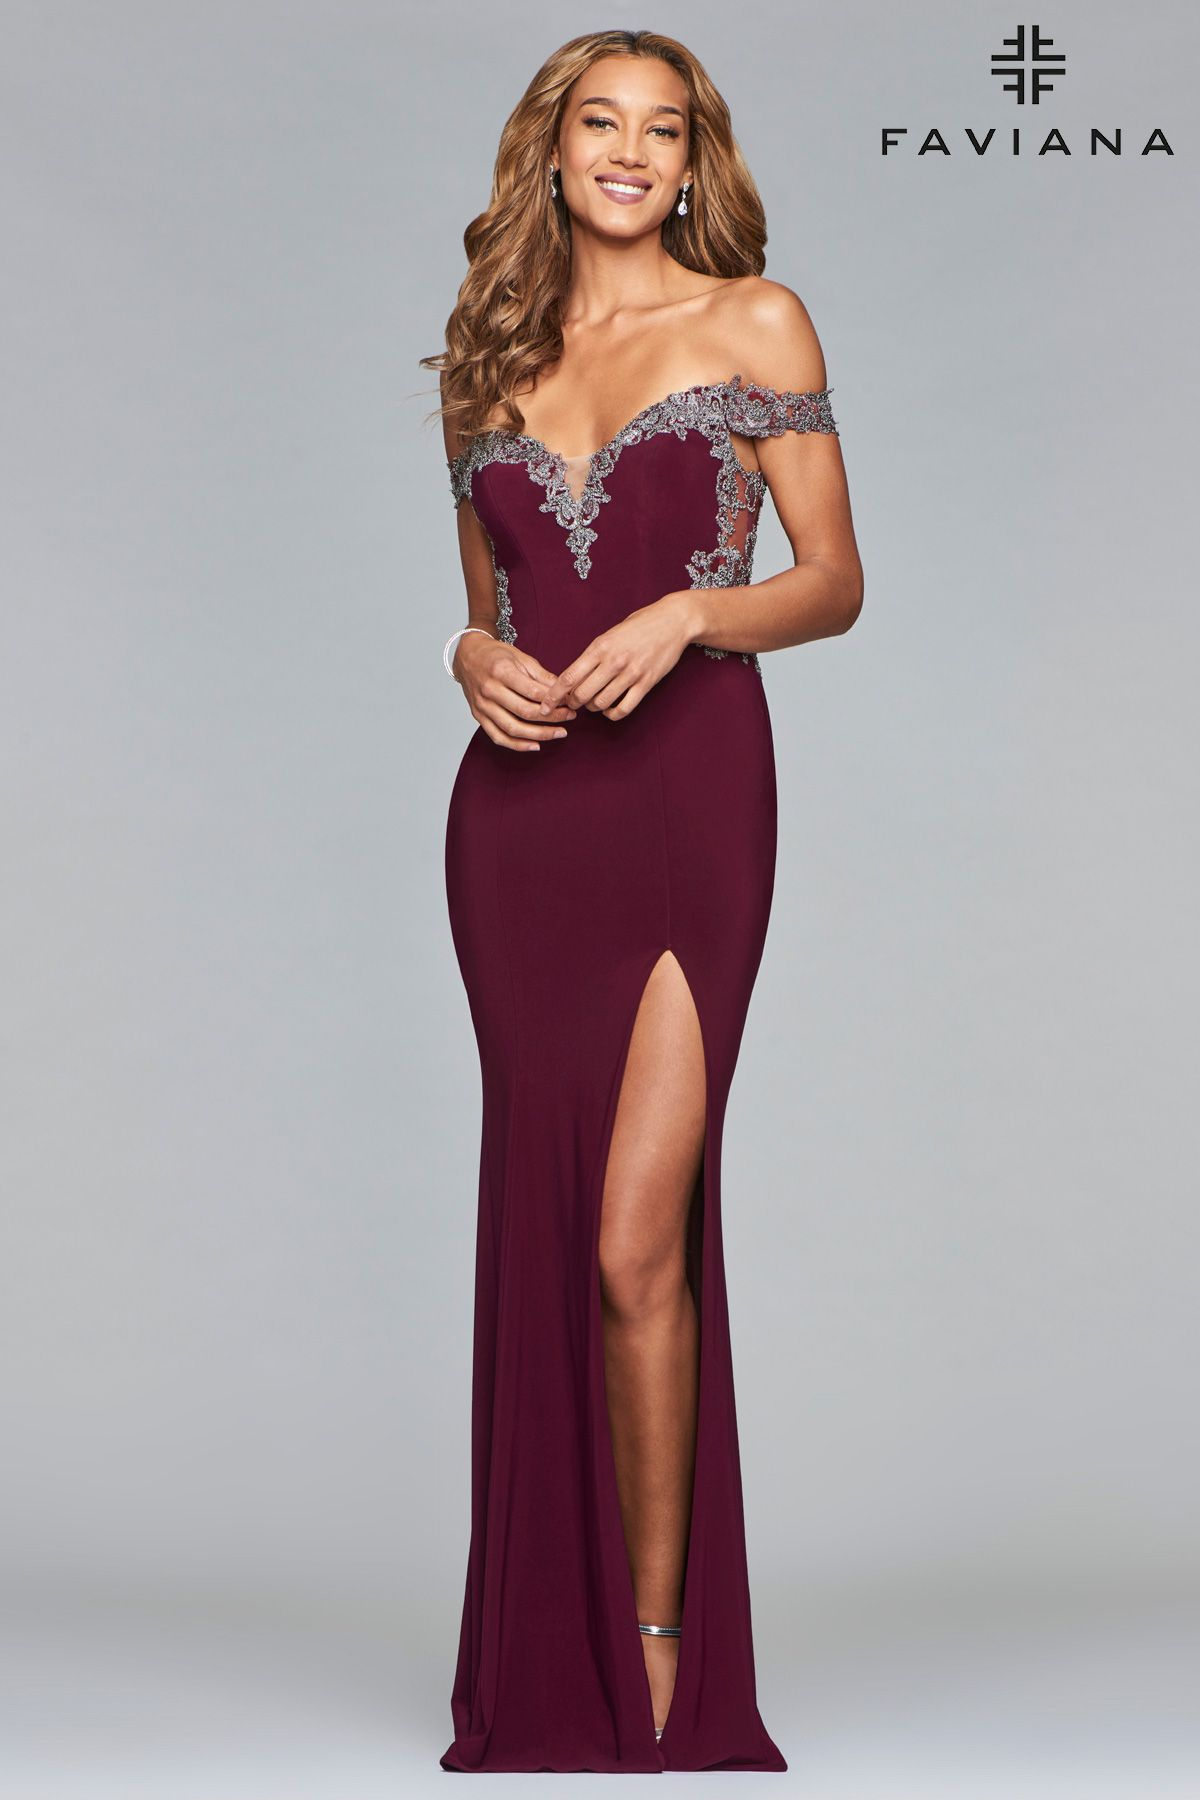 fed2333a272 Places To Buy Graduation Dresses Near Me - Data Dynamic AG